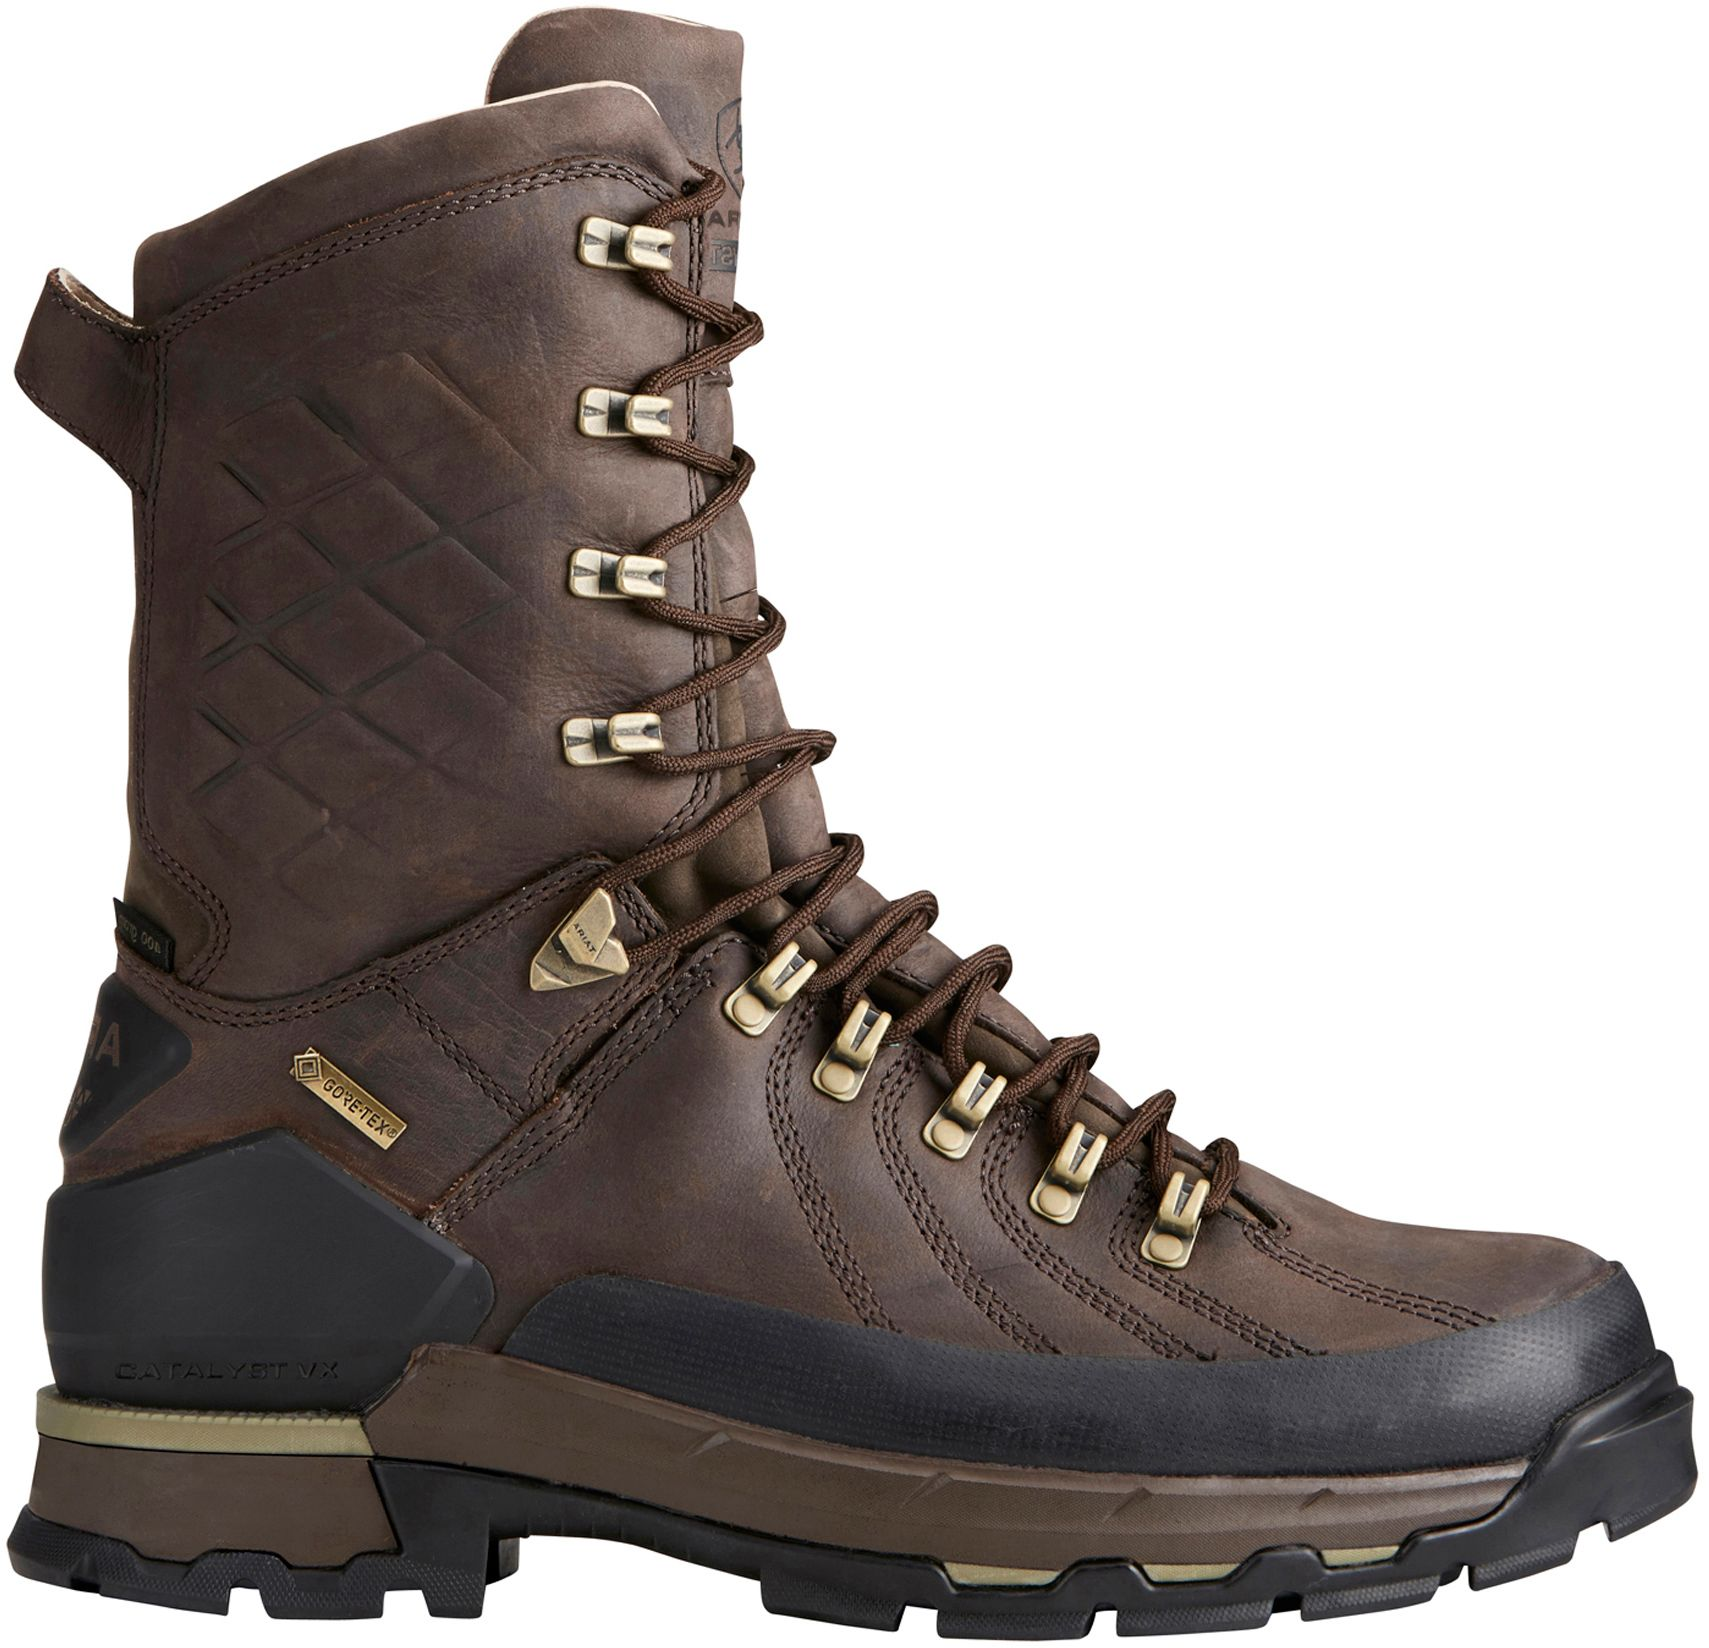 Ariat Men's Catalyst Defiant 10'' 400g GORE-TEX Field Hunting Boots, Size: 8.0, Brown thumbnail